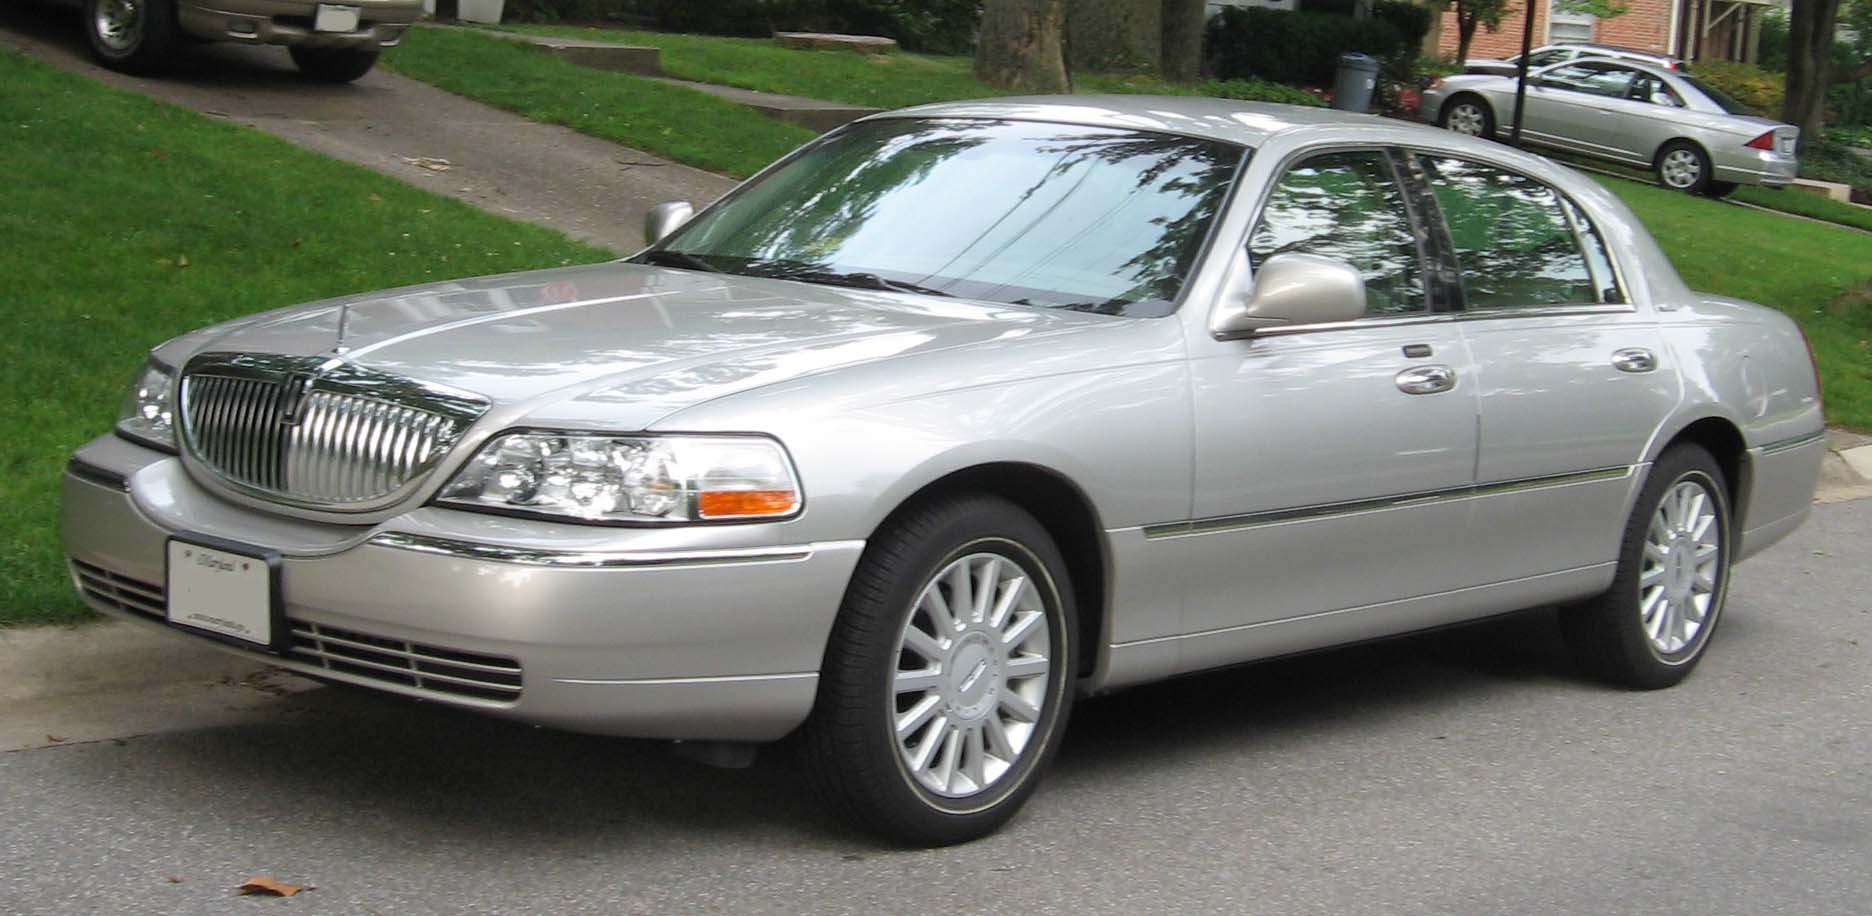 Description 03-07 Lincoln Town Car.jpg